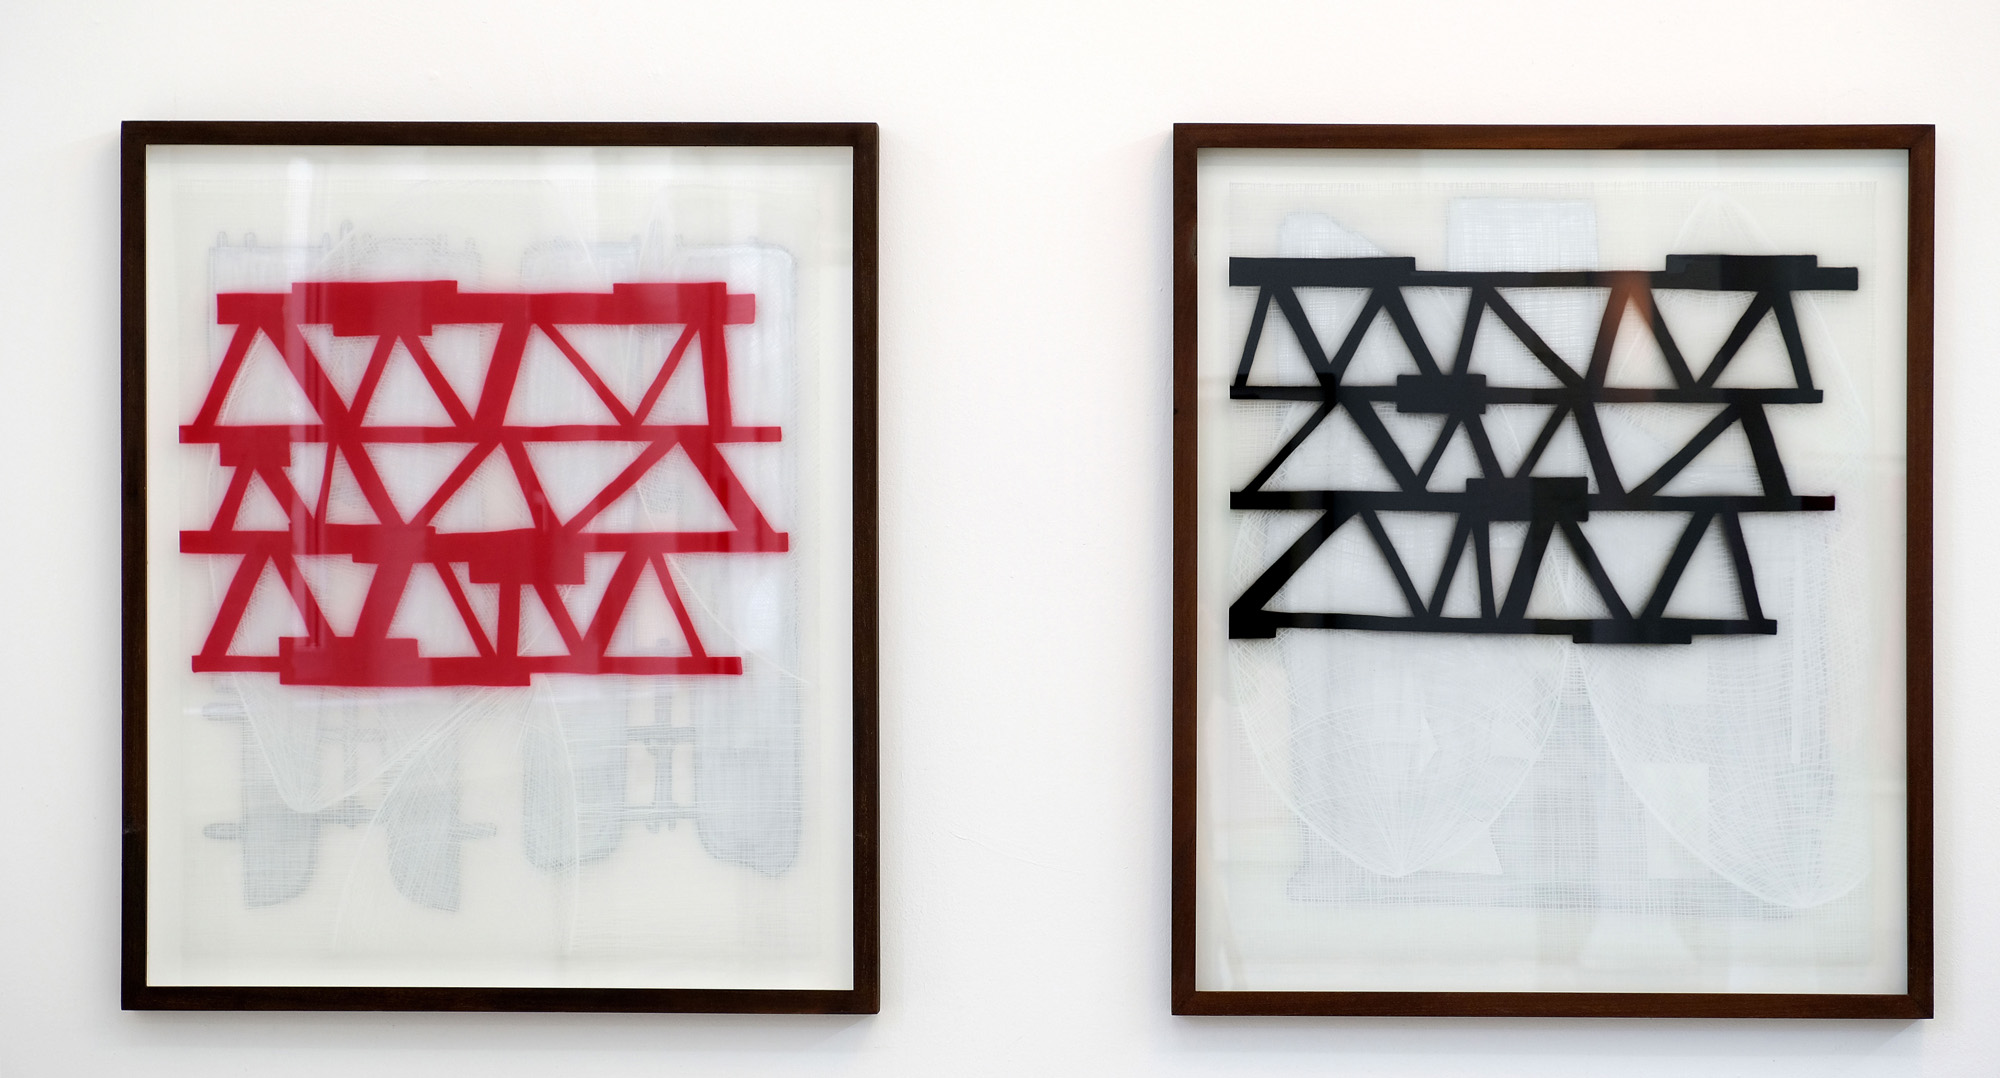 Links: Re-Entry, 110 x 94 cm, 2011; Rechts: The Ark, 110 x 94 cm, 2011